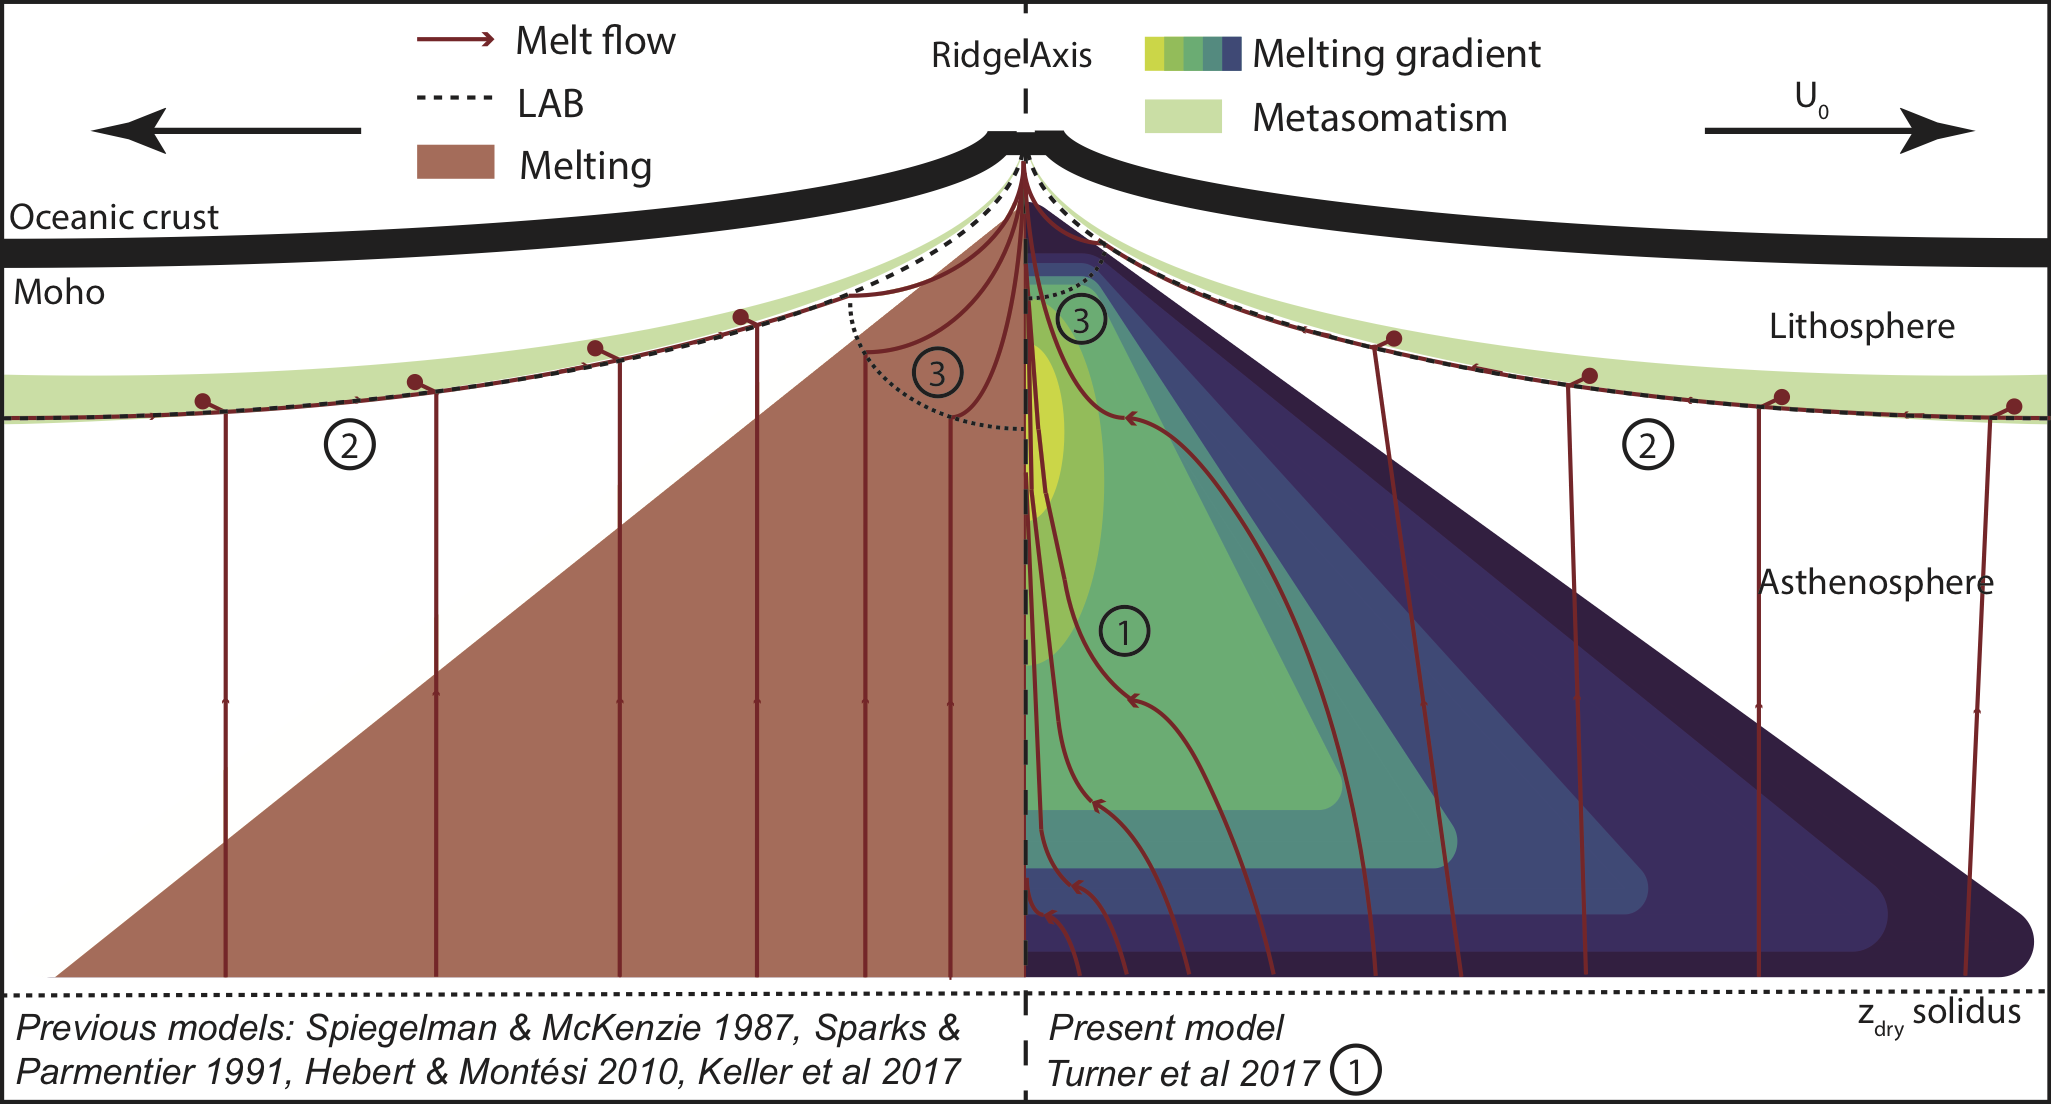 Melt focusing diagram as published in Sim's 2020 paper, The Influence of Spreading Rate and Permeability on Melt Focusing Beneath Mid-ocean Ridges.